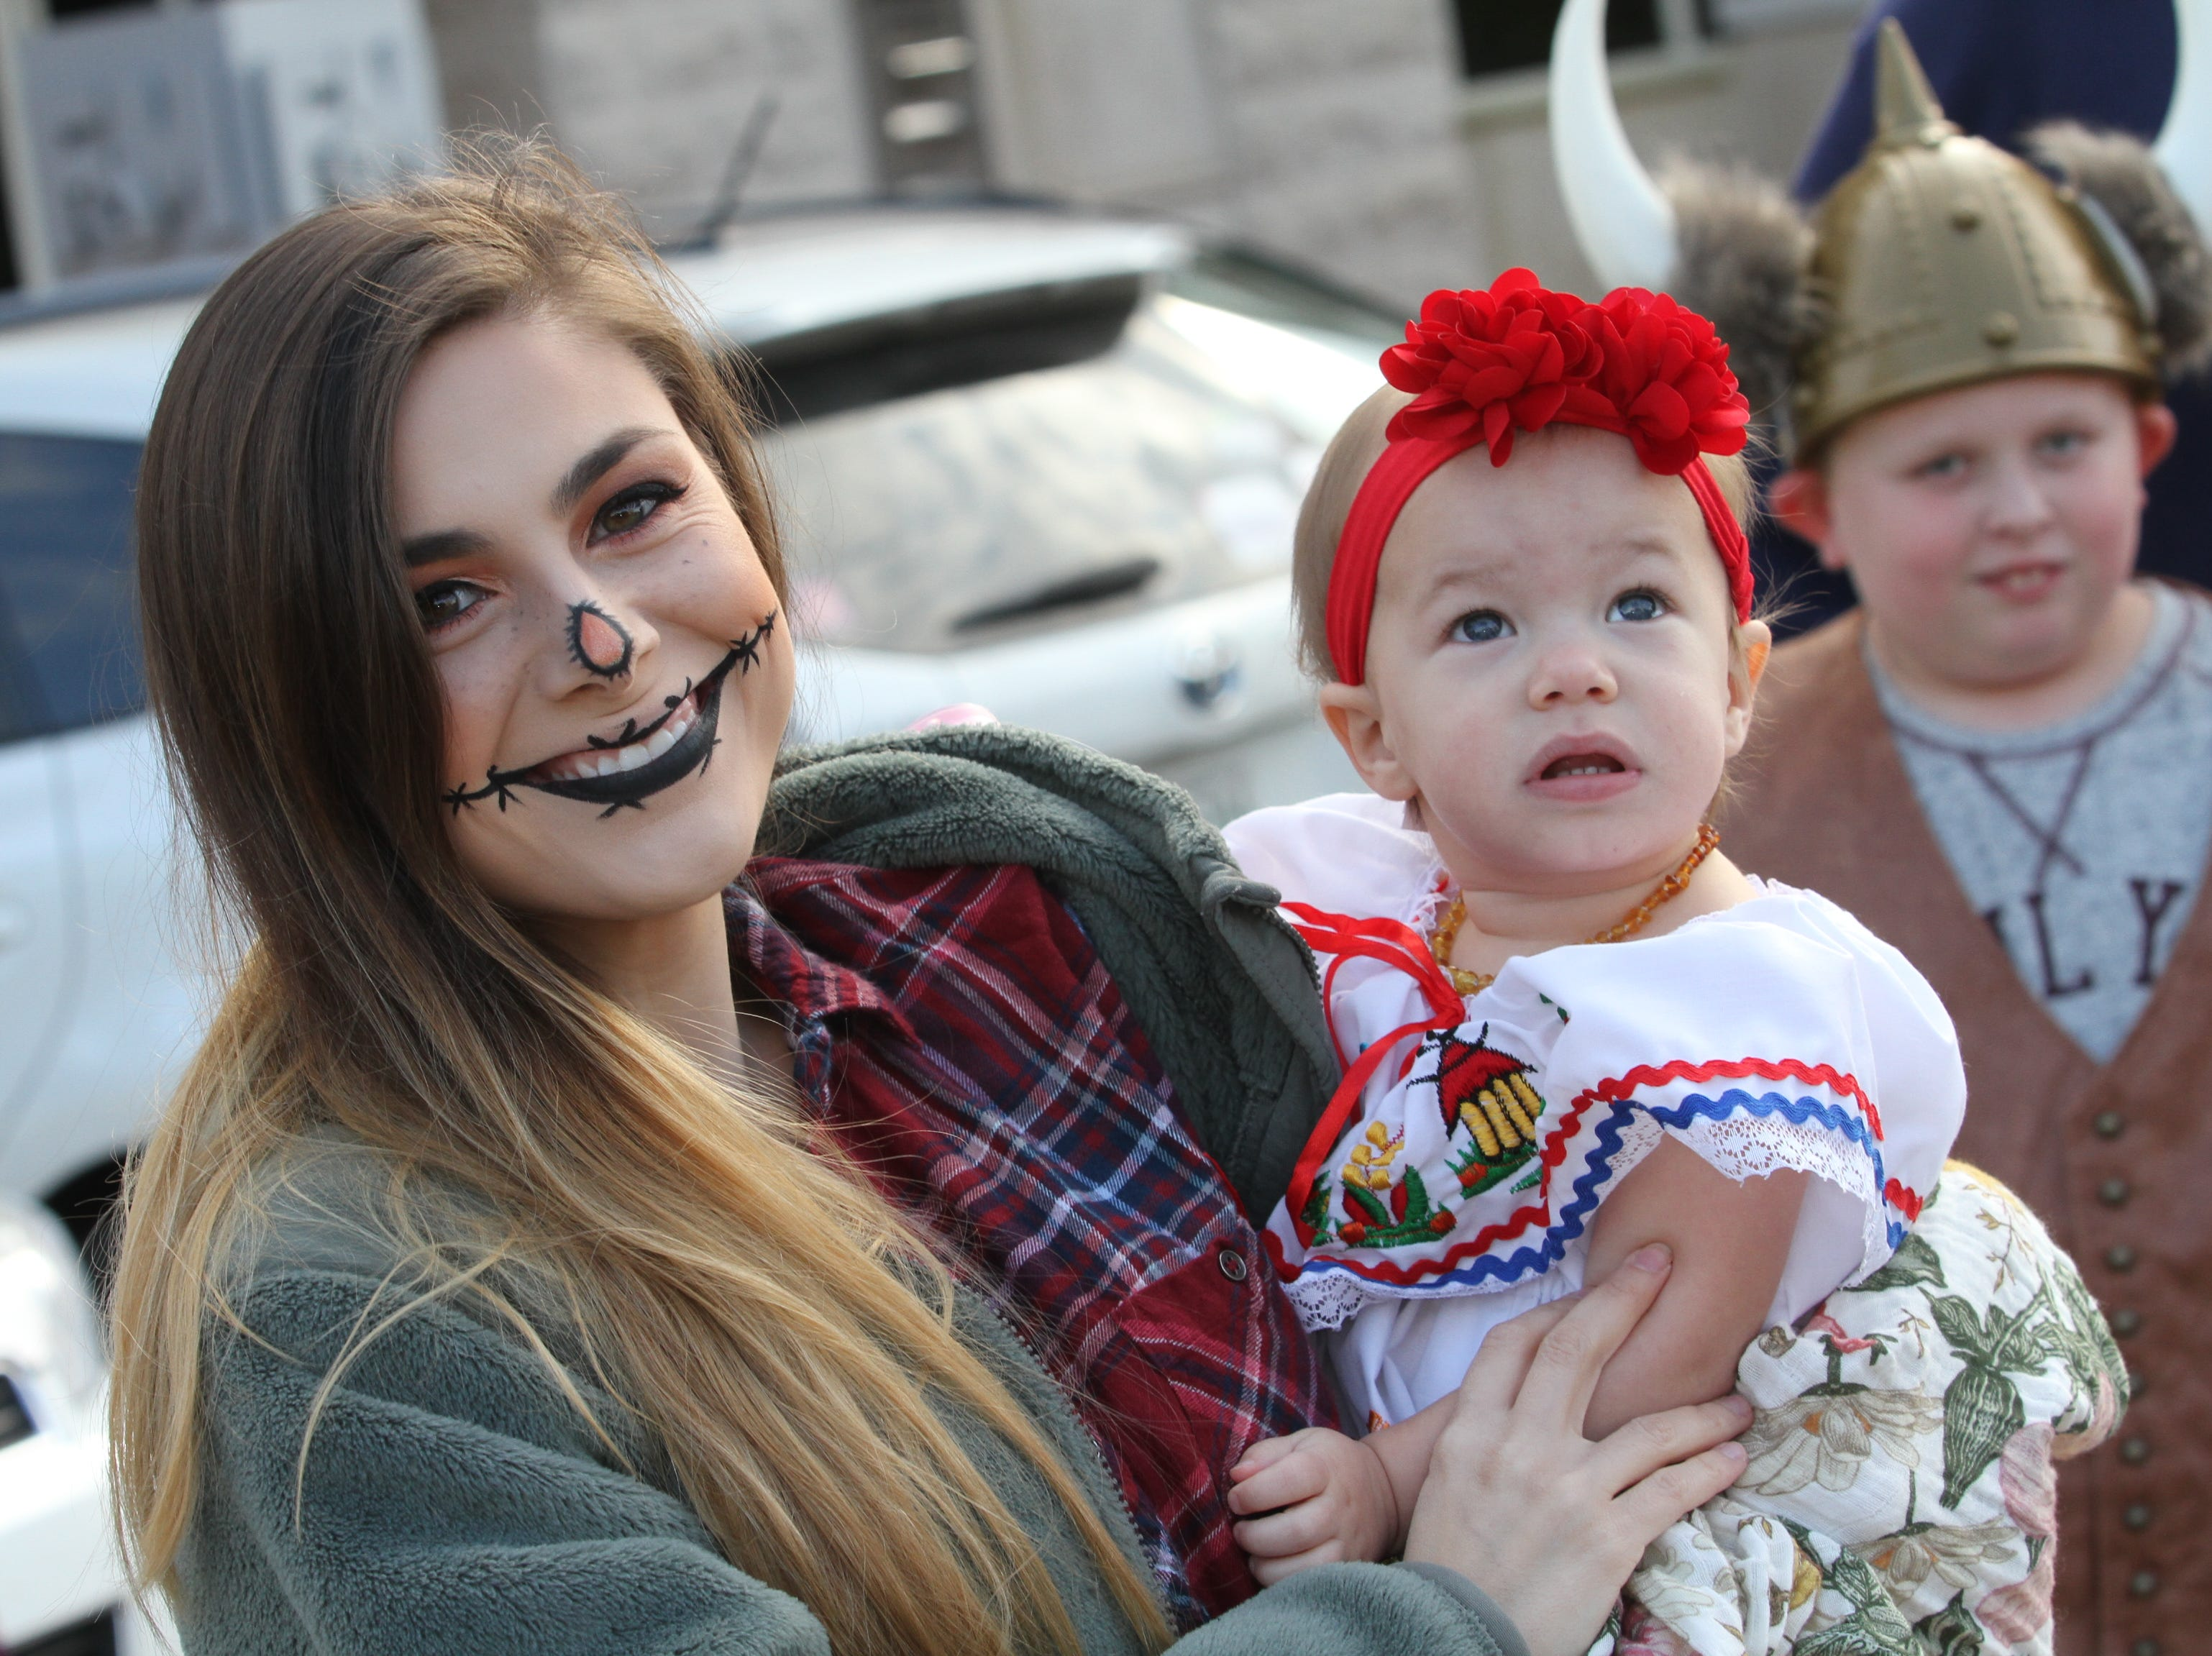 Thousands were downtown Saturday, October 27, 2018 for Clarksville's annual Fright on Franklin.